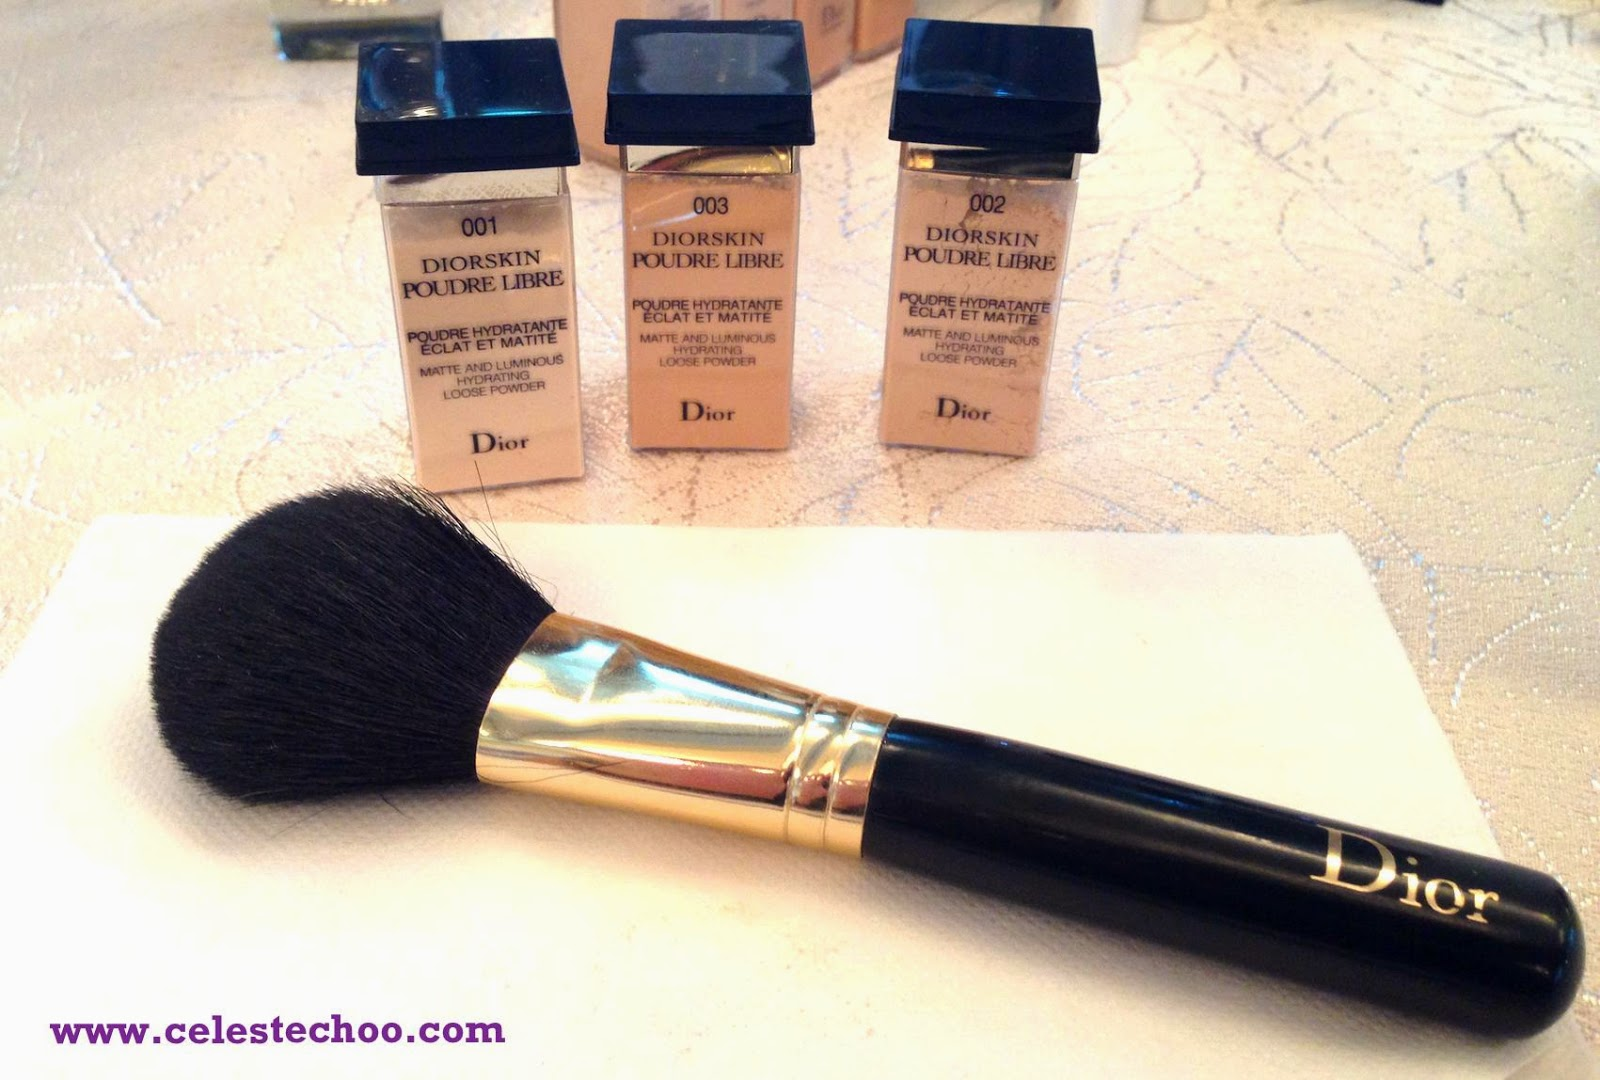 dior_beauty_makeup_workshop_loose_powder_and_brush